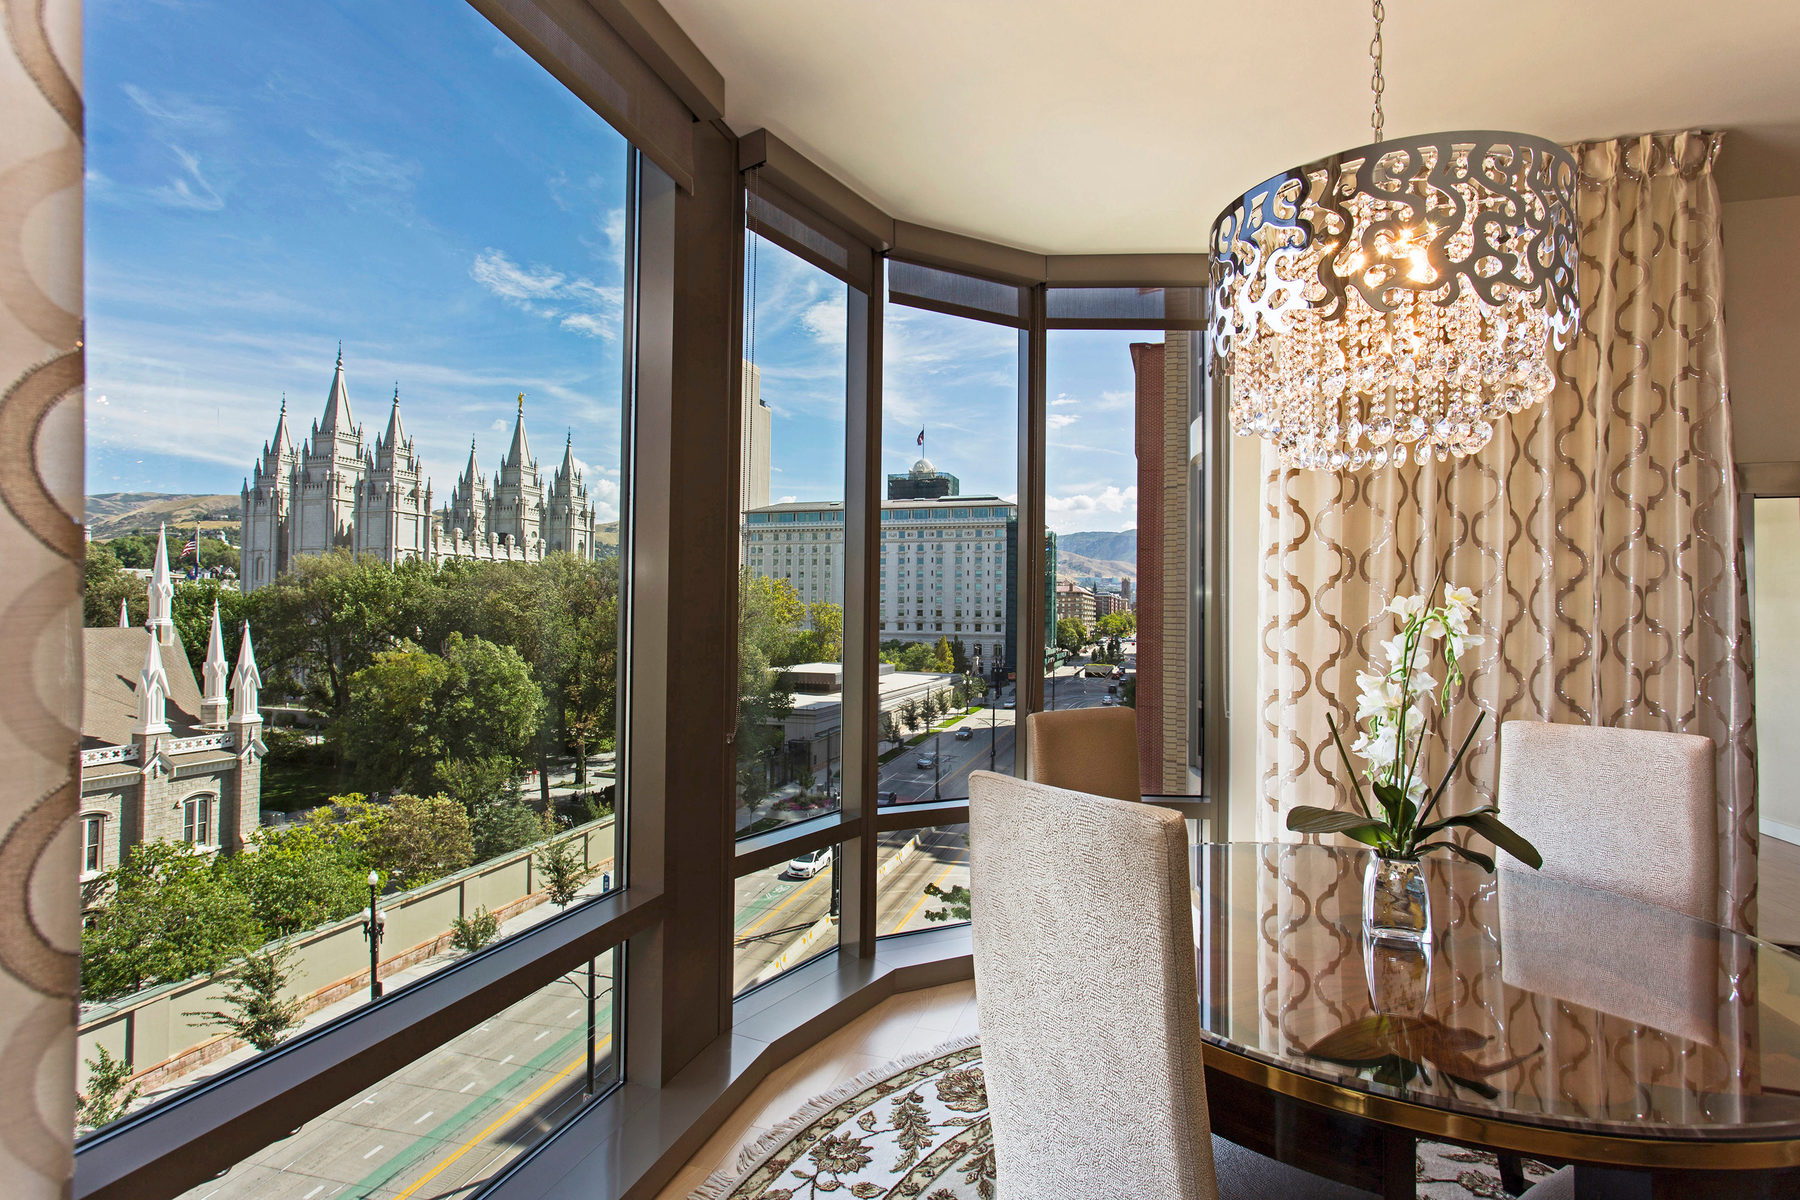 Condomínio para Venda às Captivating Views and Exquisite Design and Interior 99 W South Temple St #606 Salt Lake City, Utah, 84101 Estados Unidos